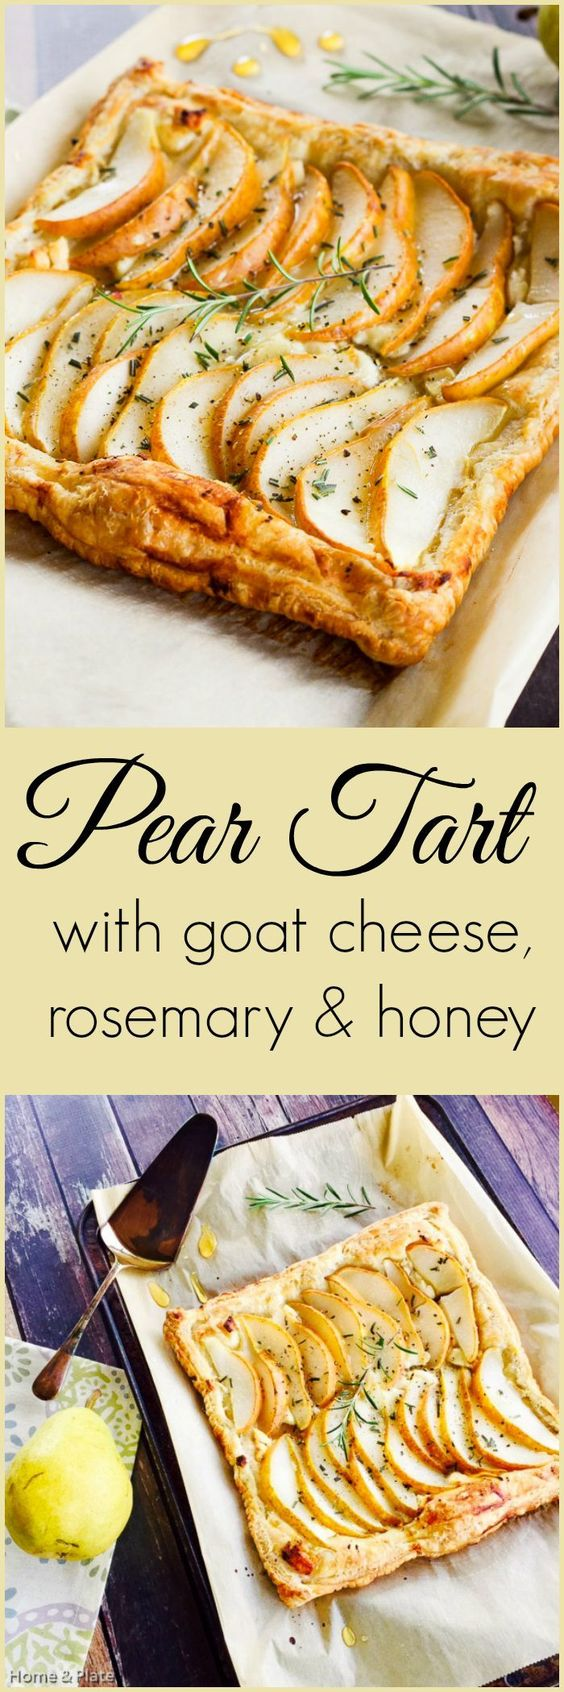 Pear tart, Goat cheese and Pears on Pinterest